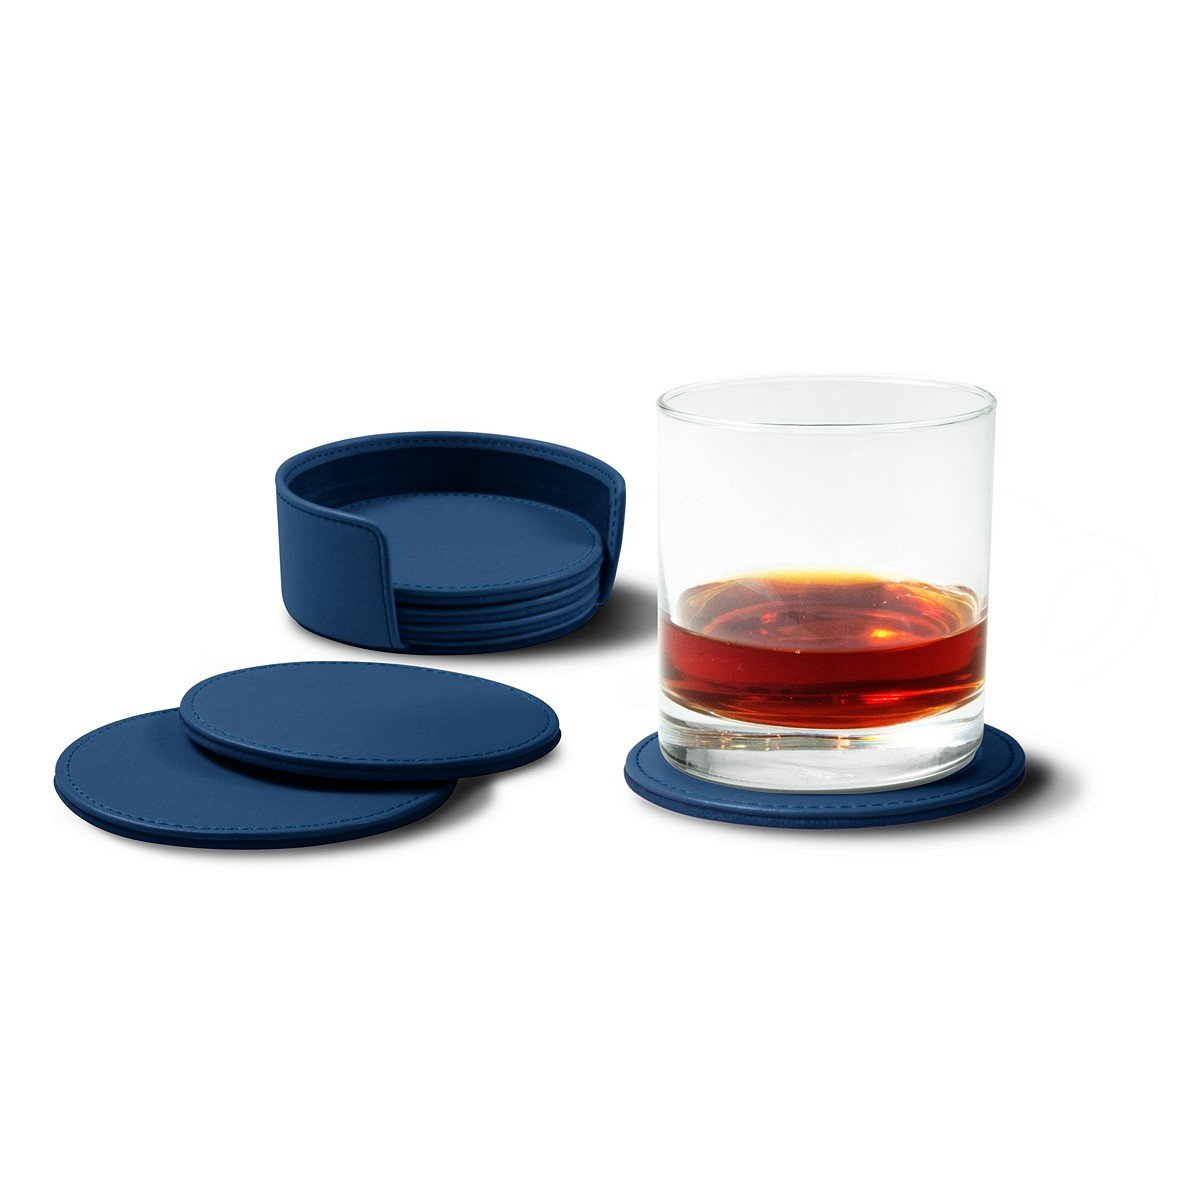 Lucrin - Set of 6 Round Real Leather Coasters with Coaster Holder - Royal Blue - Smooth Leather by Lucrin